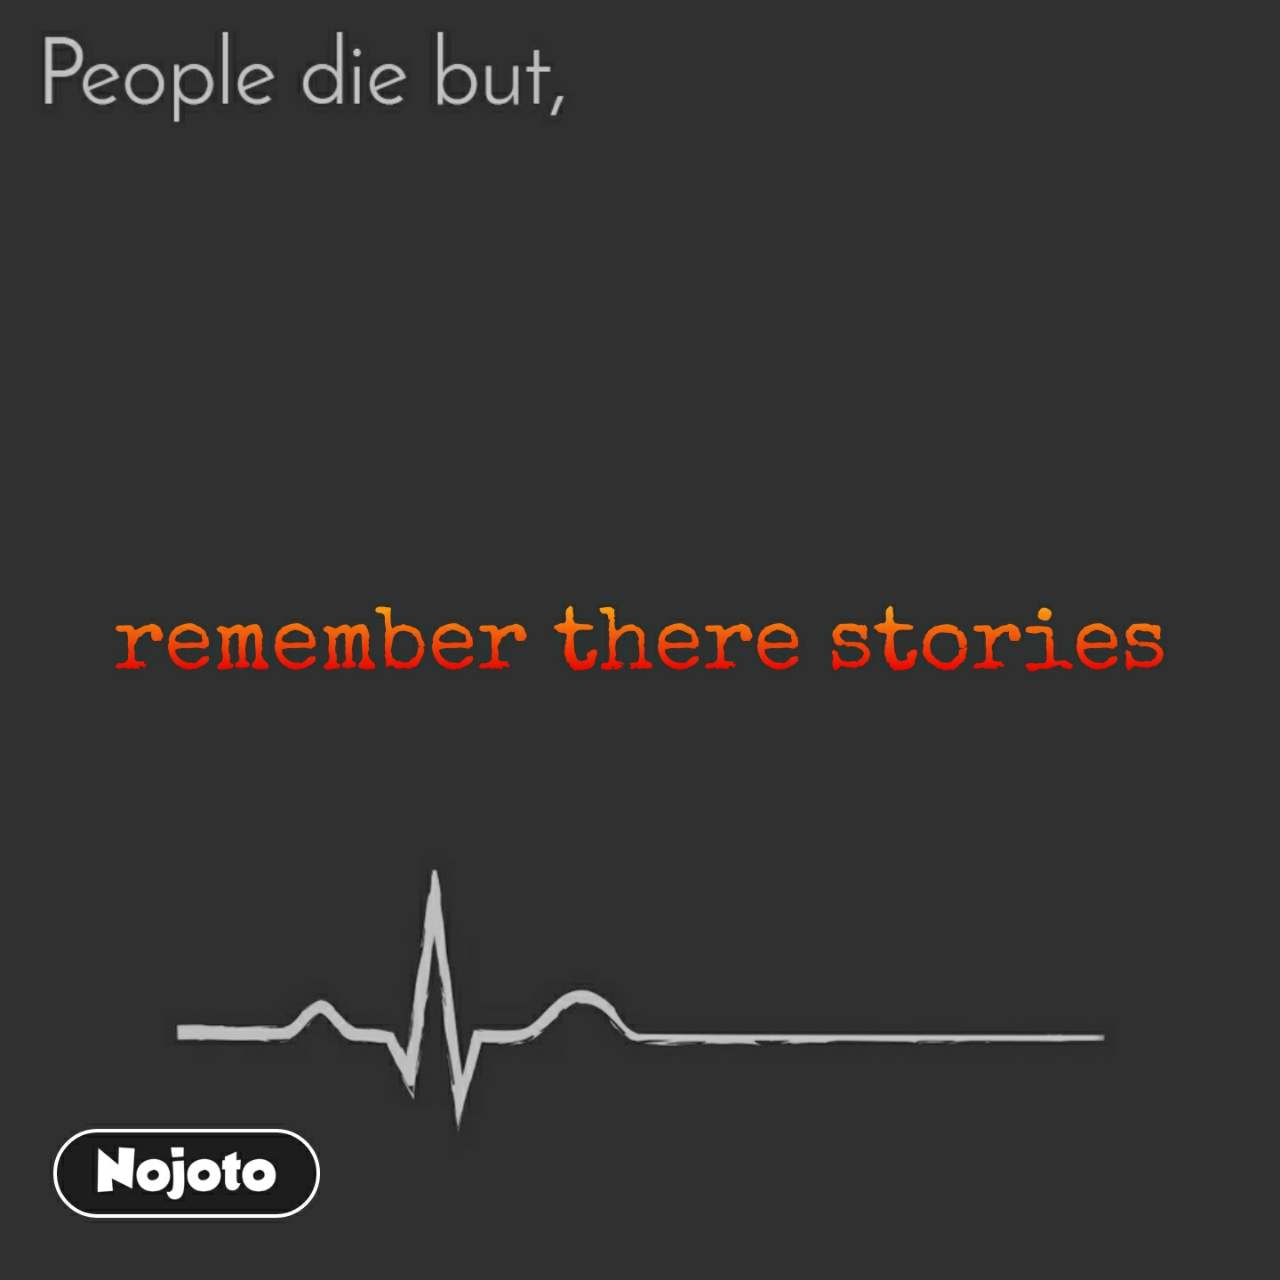 People die but, remember there stories